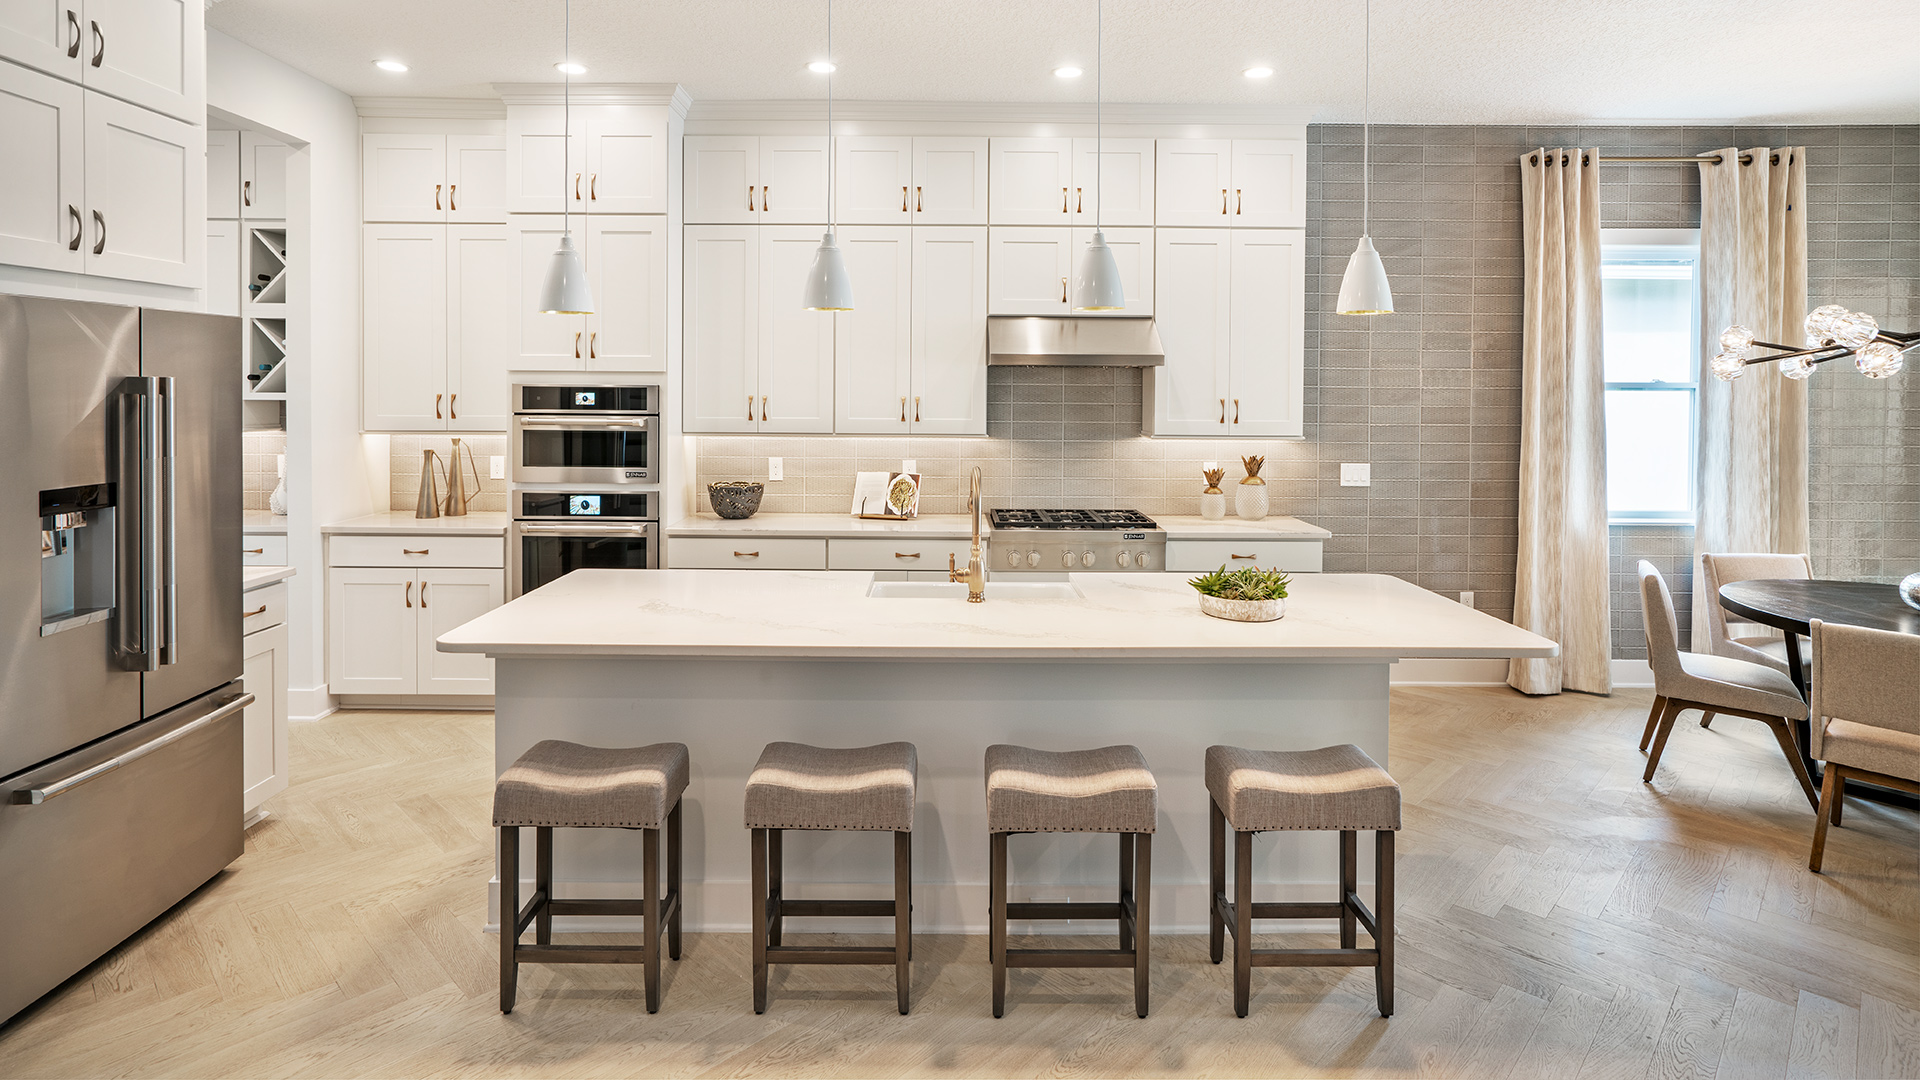 Well-designed kitchens